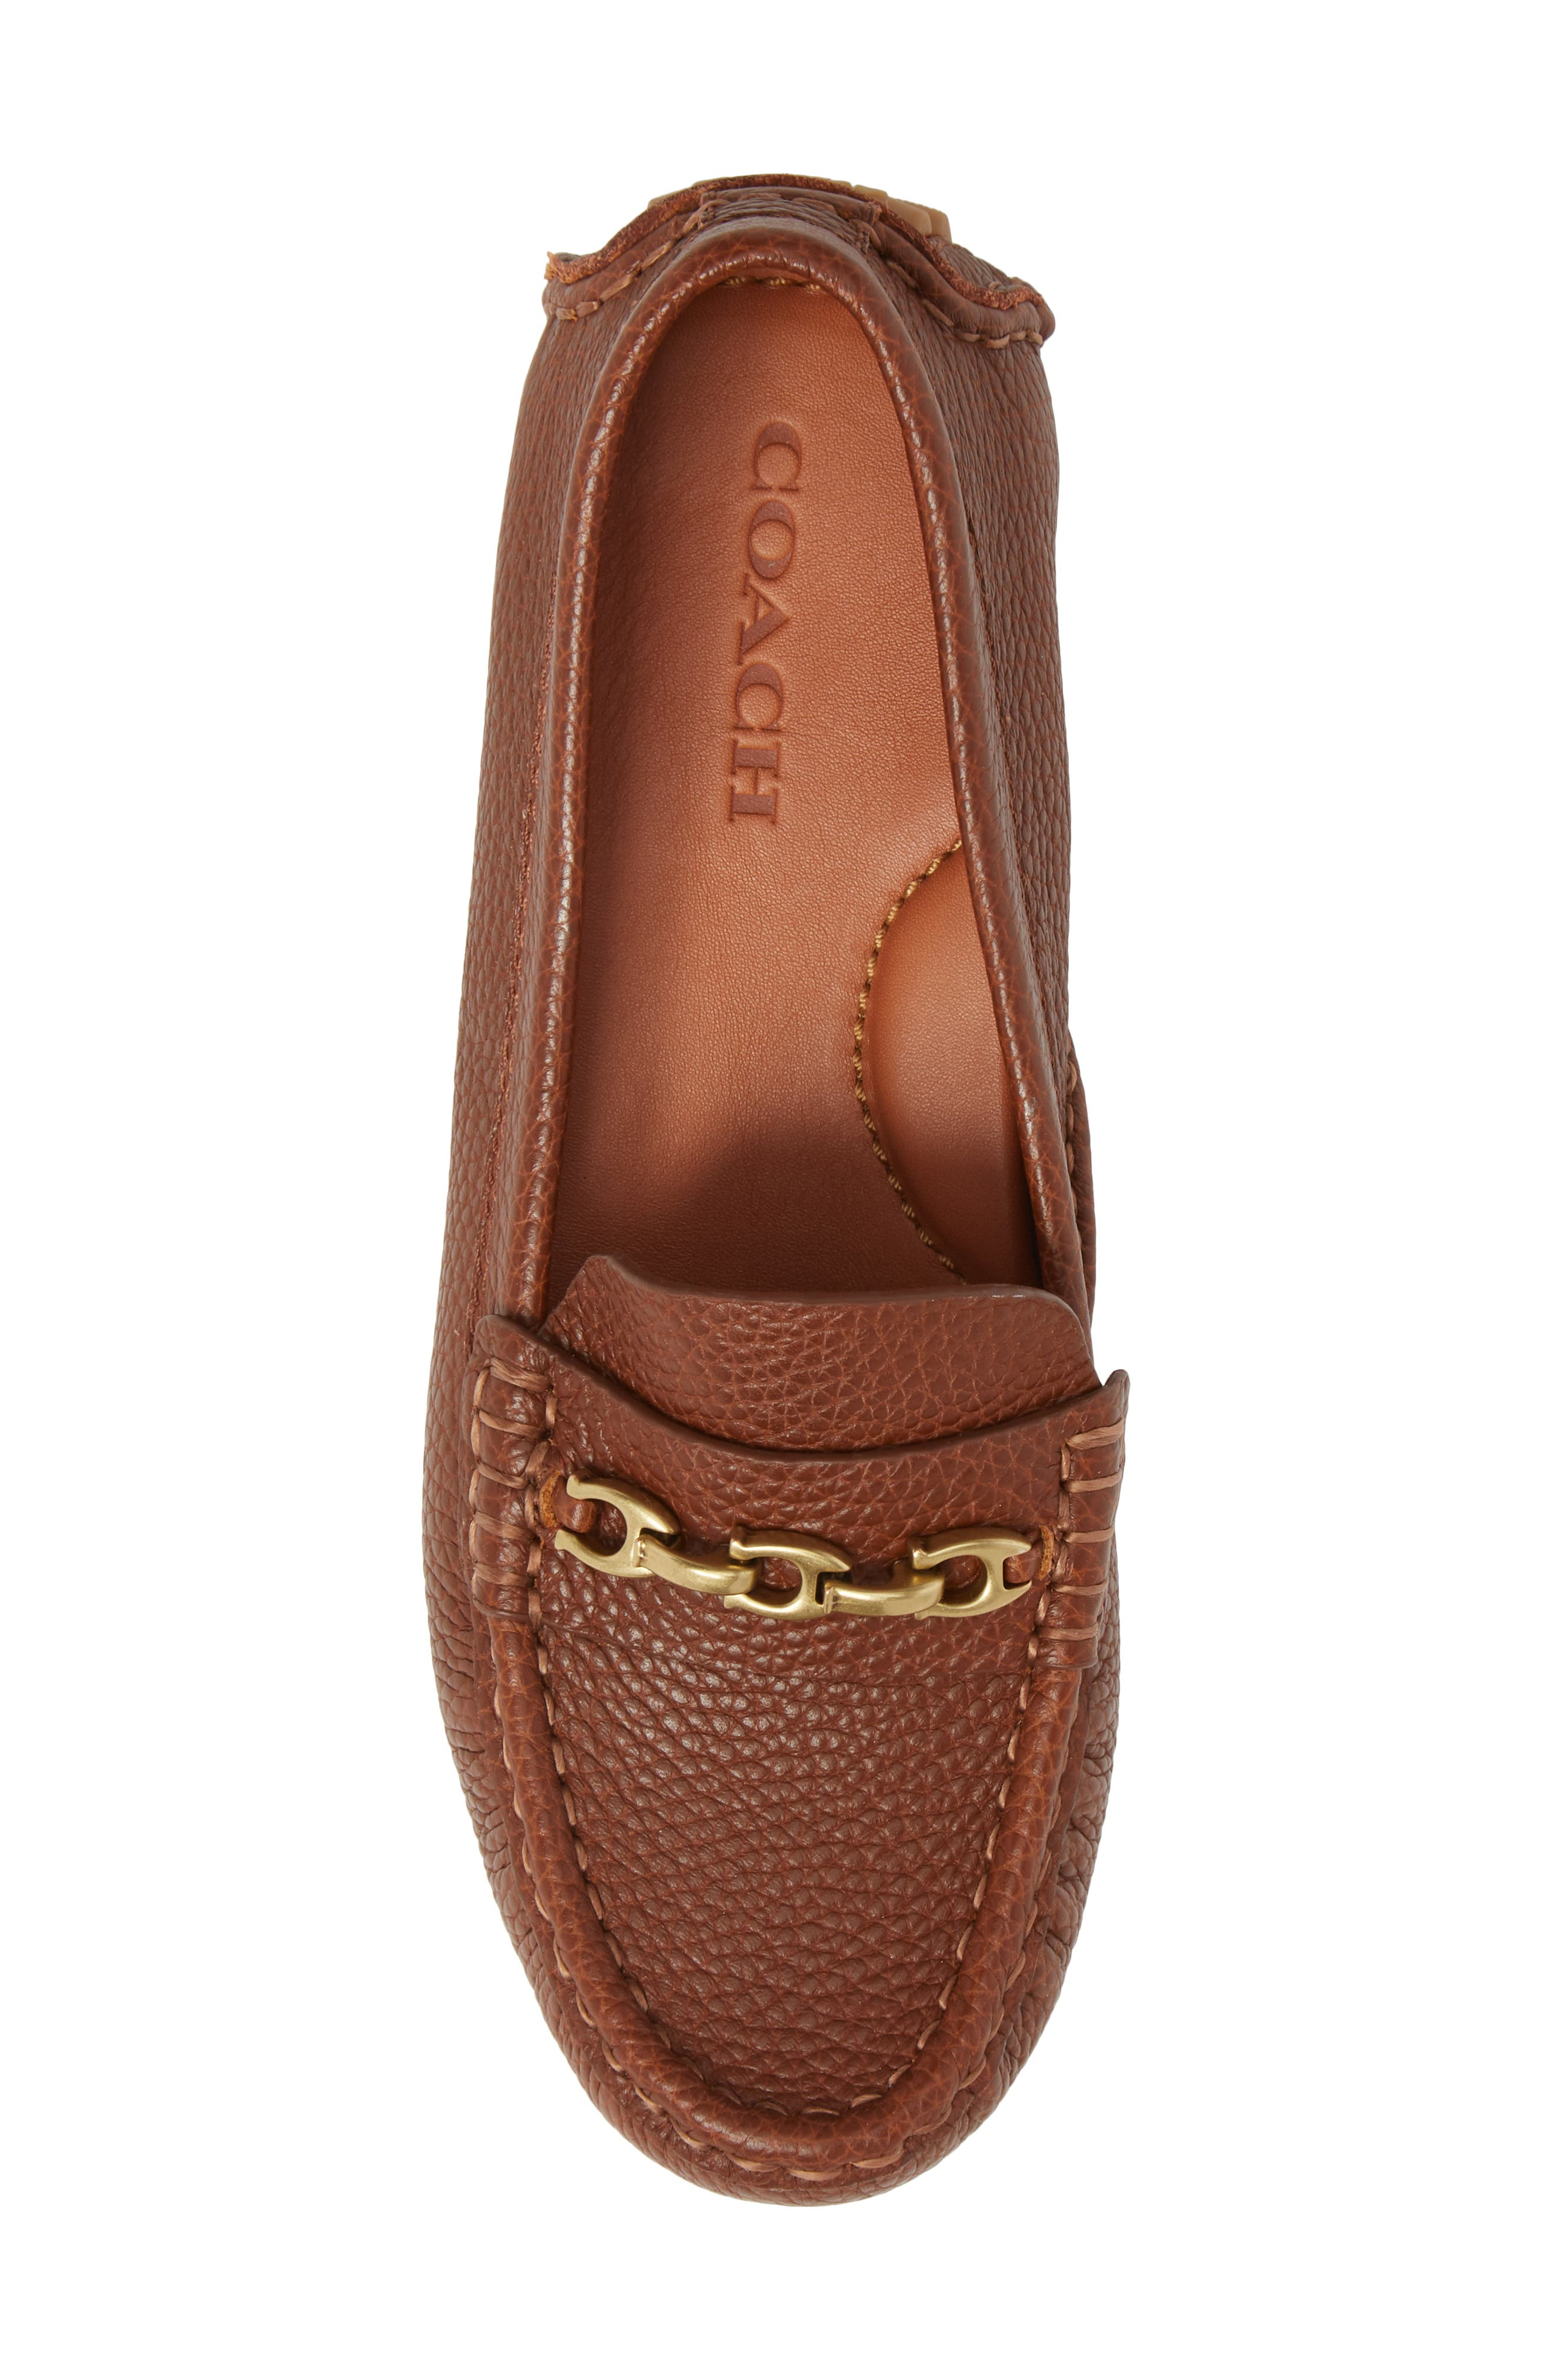 COACH, Crosby Driver Loafer, Alternate thumbnail 5, color, LION PEBBLED LEATHER